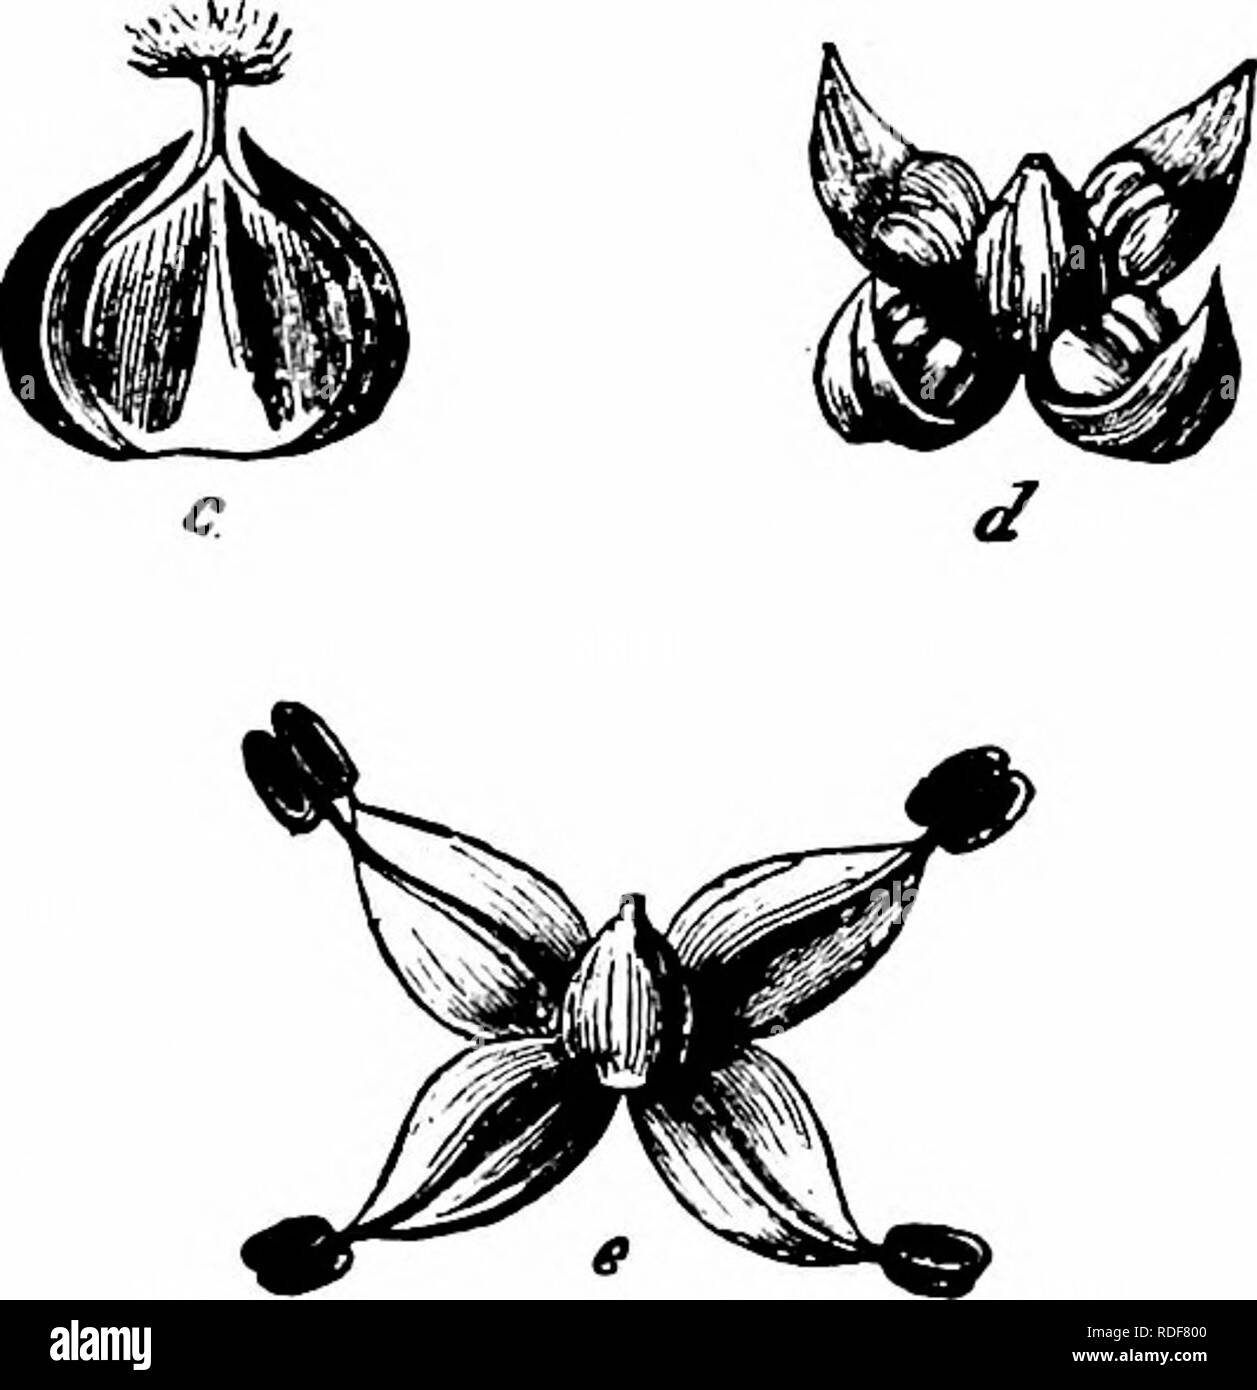 . Handbook of flower pollination : based upon Hermann Mu?ller's work 'The fertilisation of flowers by insects' . Fertilization of plants. 372 ANGIOSPERMAE—DICOTYLEDONES 2549. P. judaica L. (= P. diffusa Mert. et Koch, and P. ramiflora MoencK). (Hildebrand, ' D. Geschlechts-Vert. b. d. Pfl.,' pp. 18-19.)—In this species the brush-like stigmas protrude from the bud while the perianth is still closed, and are shrivelled before this opens and the anthers dehisce. Self-pollination is therefore excluded, and crossing with separate stocks always takes place. 2550. P. officinalis L. (= P. erecta Meri. - Stock Image